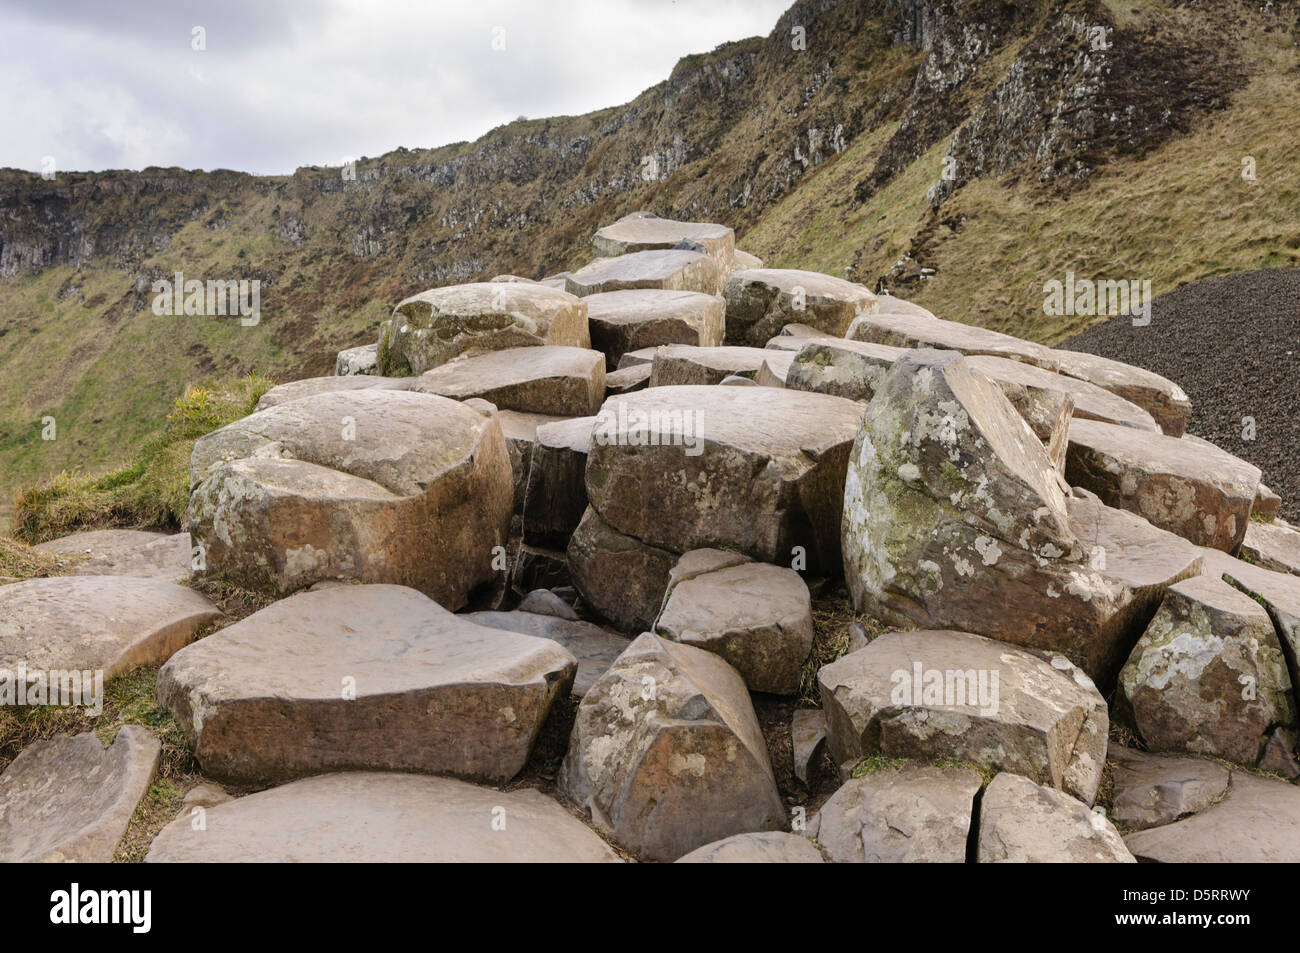 Basalt stone columns at the Giant's Causeway - Stock Image